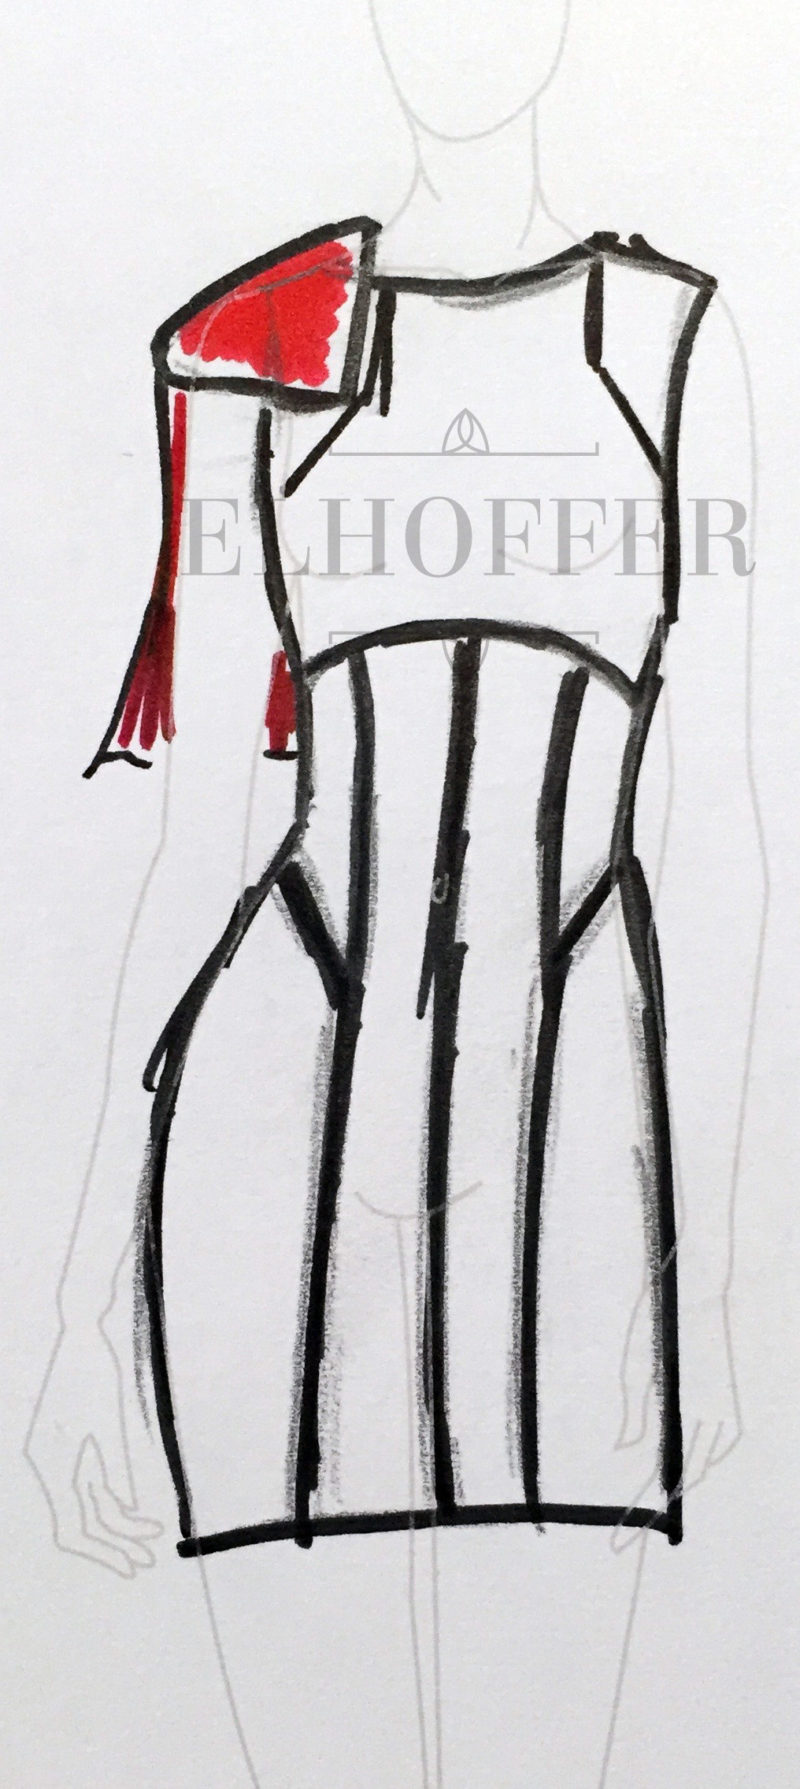 Elhoffer Design - Stormtrooper inspired dress concept sketch